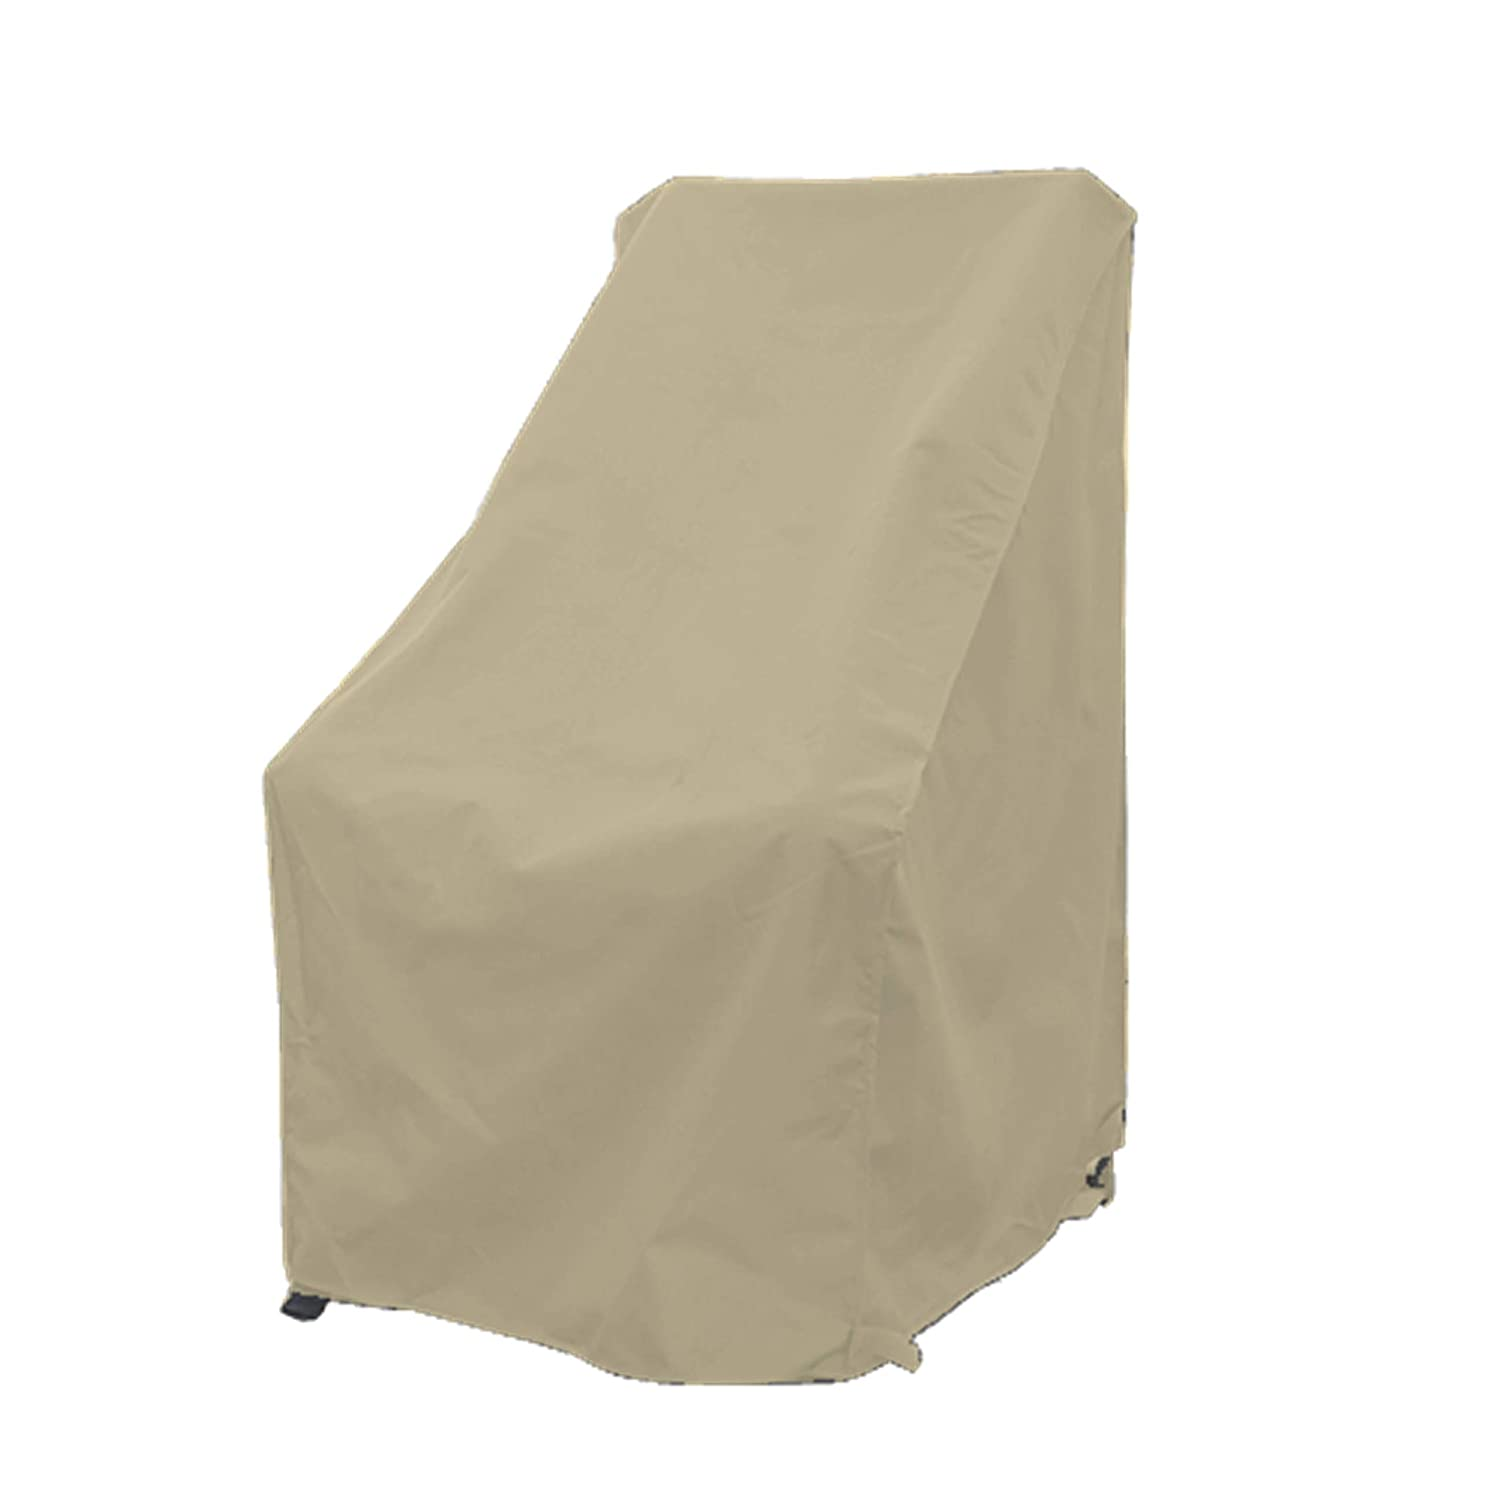 Premium Tight Weave Patio High Back Chair Covers with Peel and Stick Fasteners Protects Furniture up to 42 H in Taupe